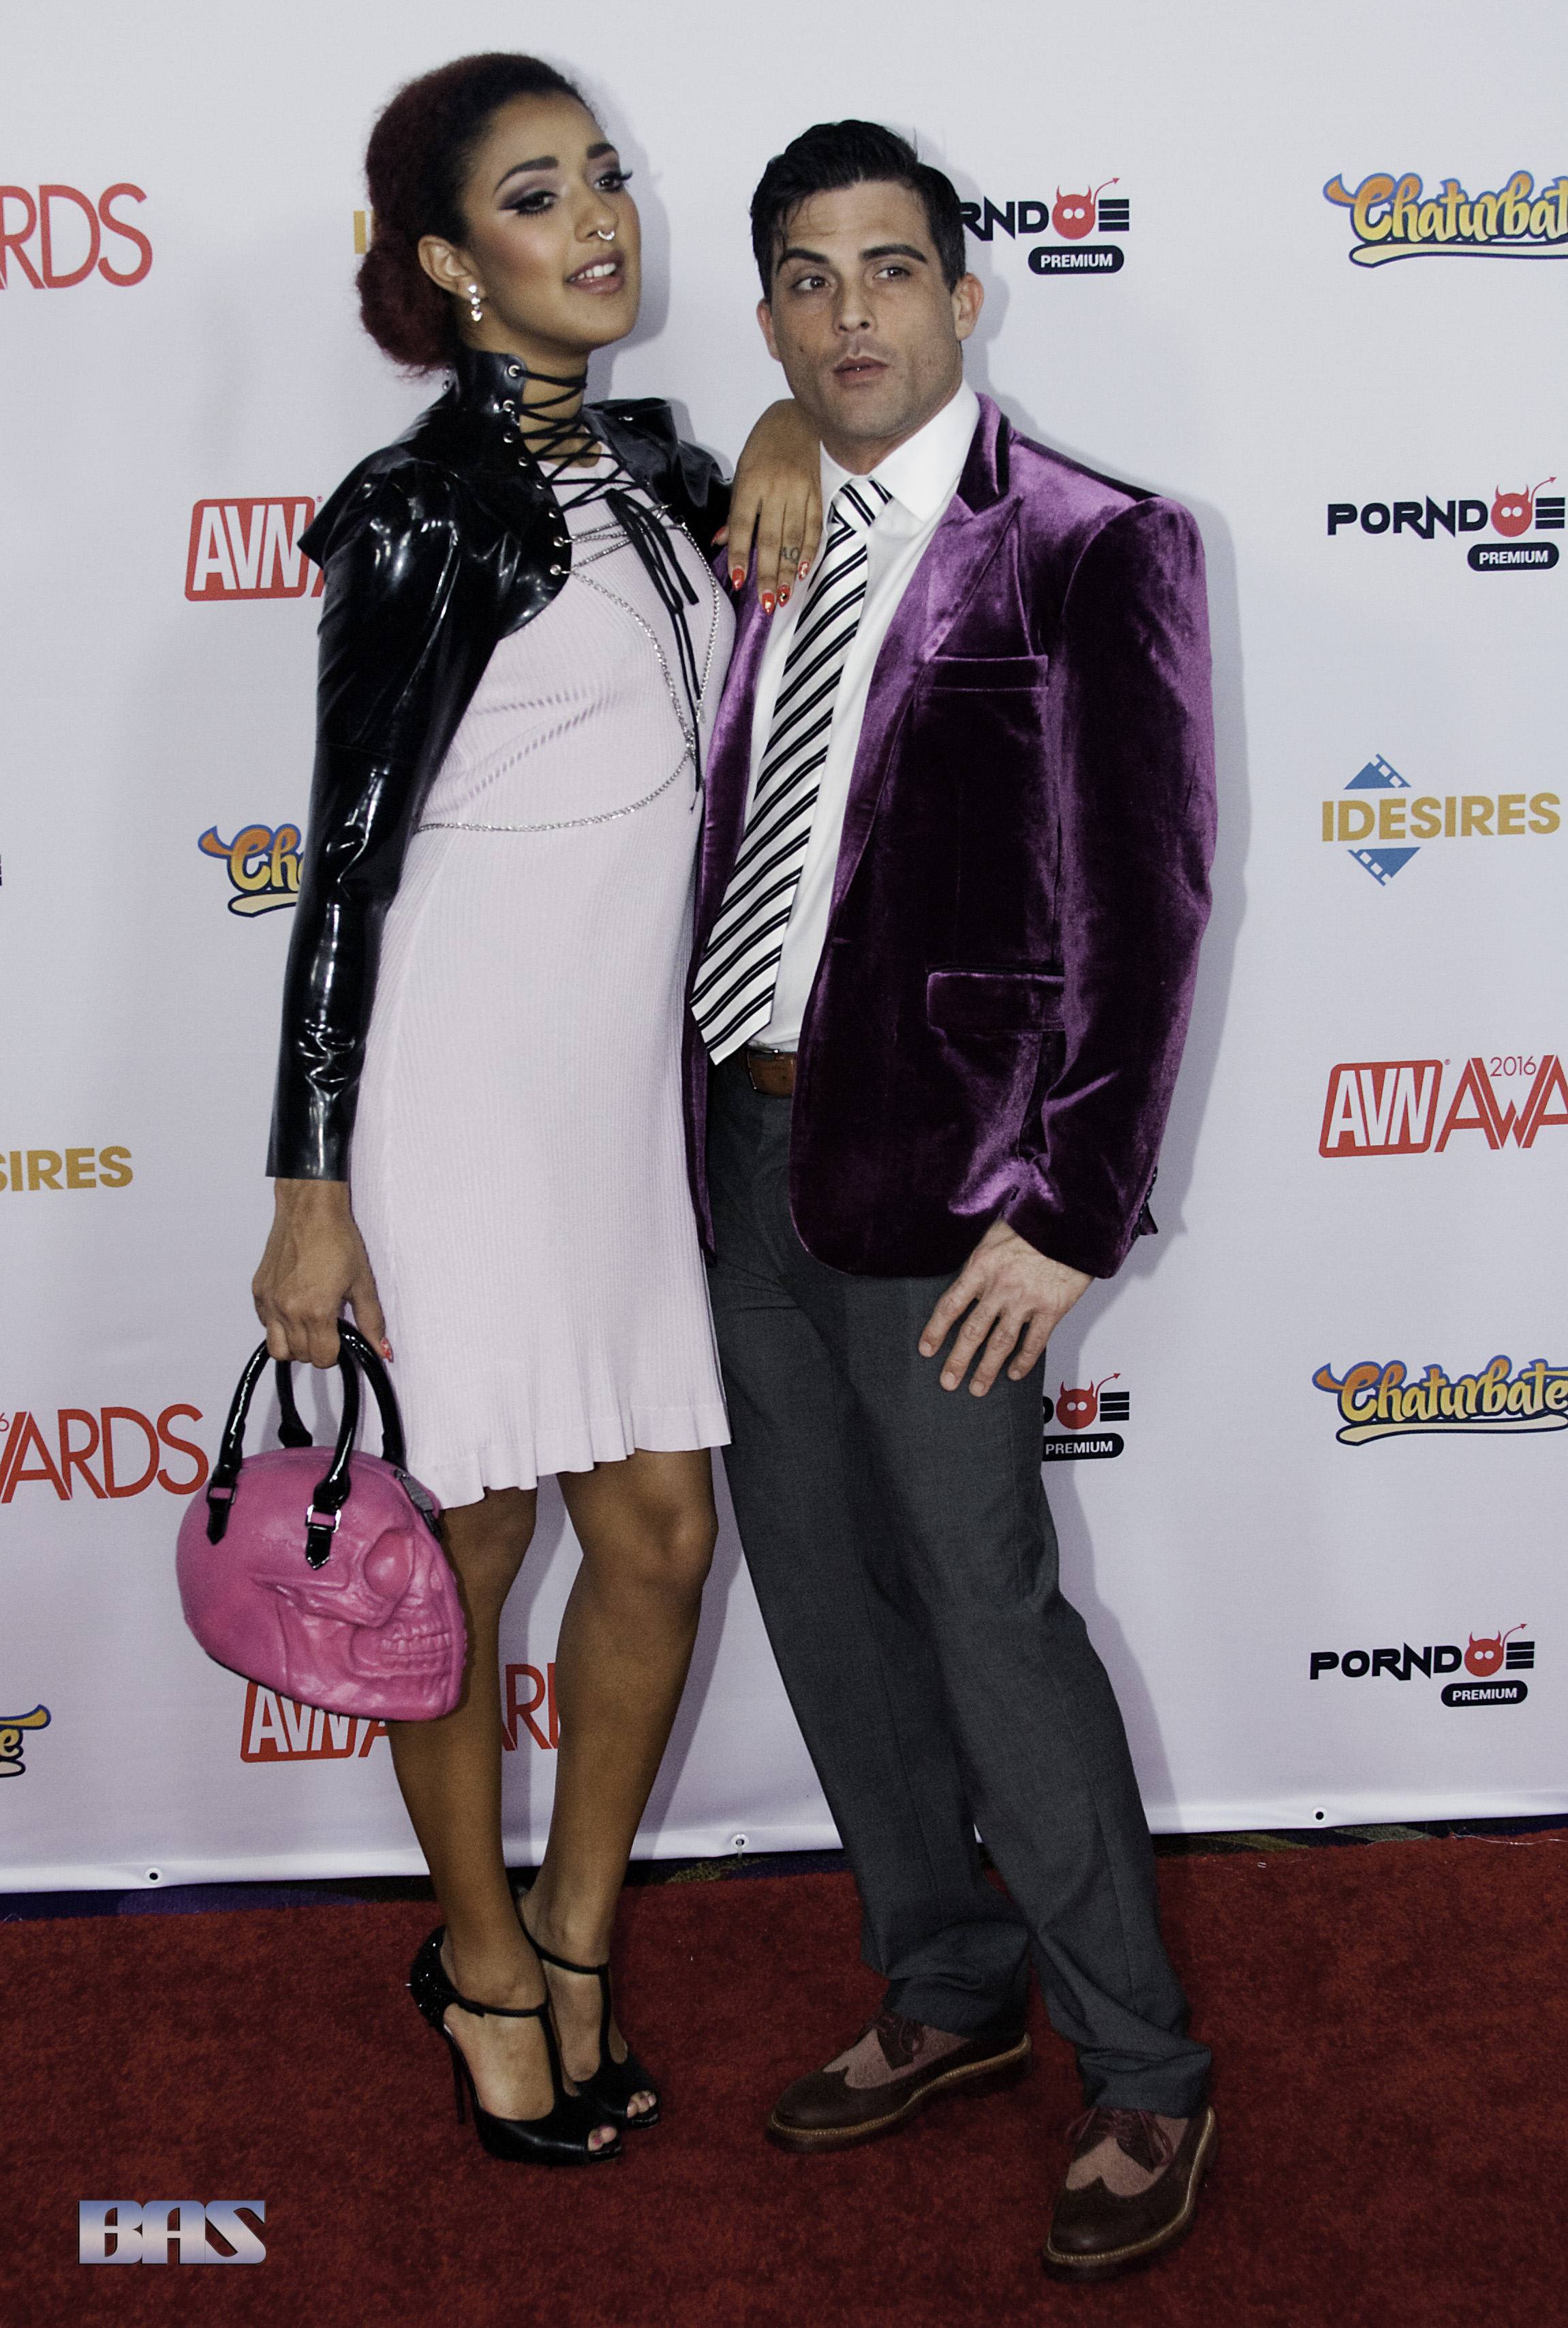 Daisy_Ducati_and_Lance_Hart_at_AVN_Awards_2016_(26672056165)